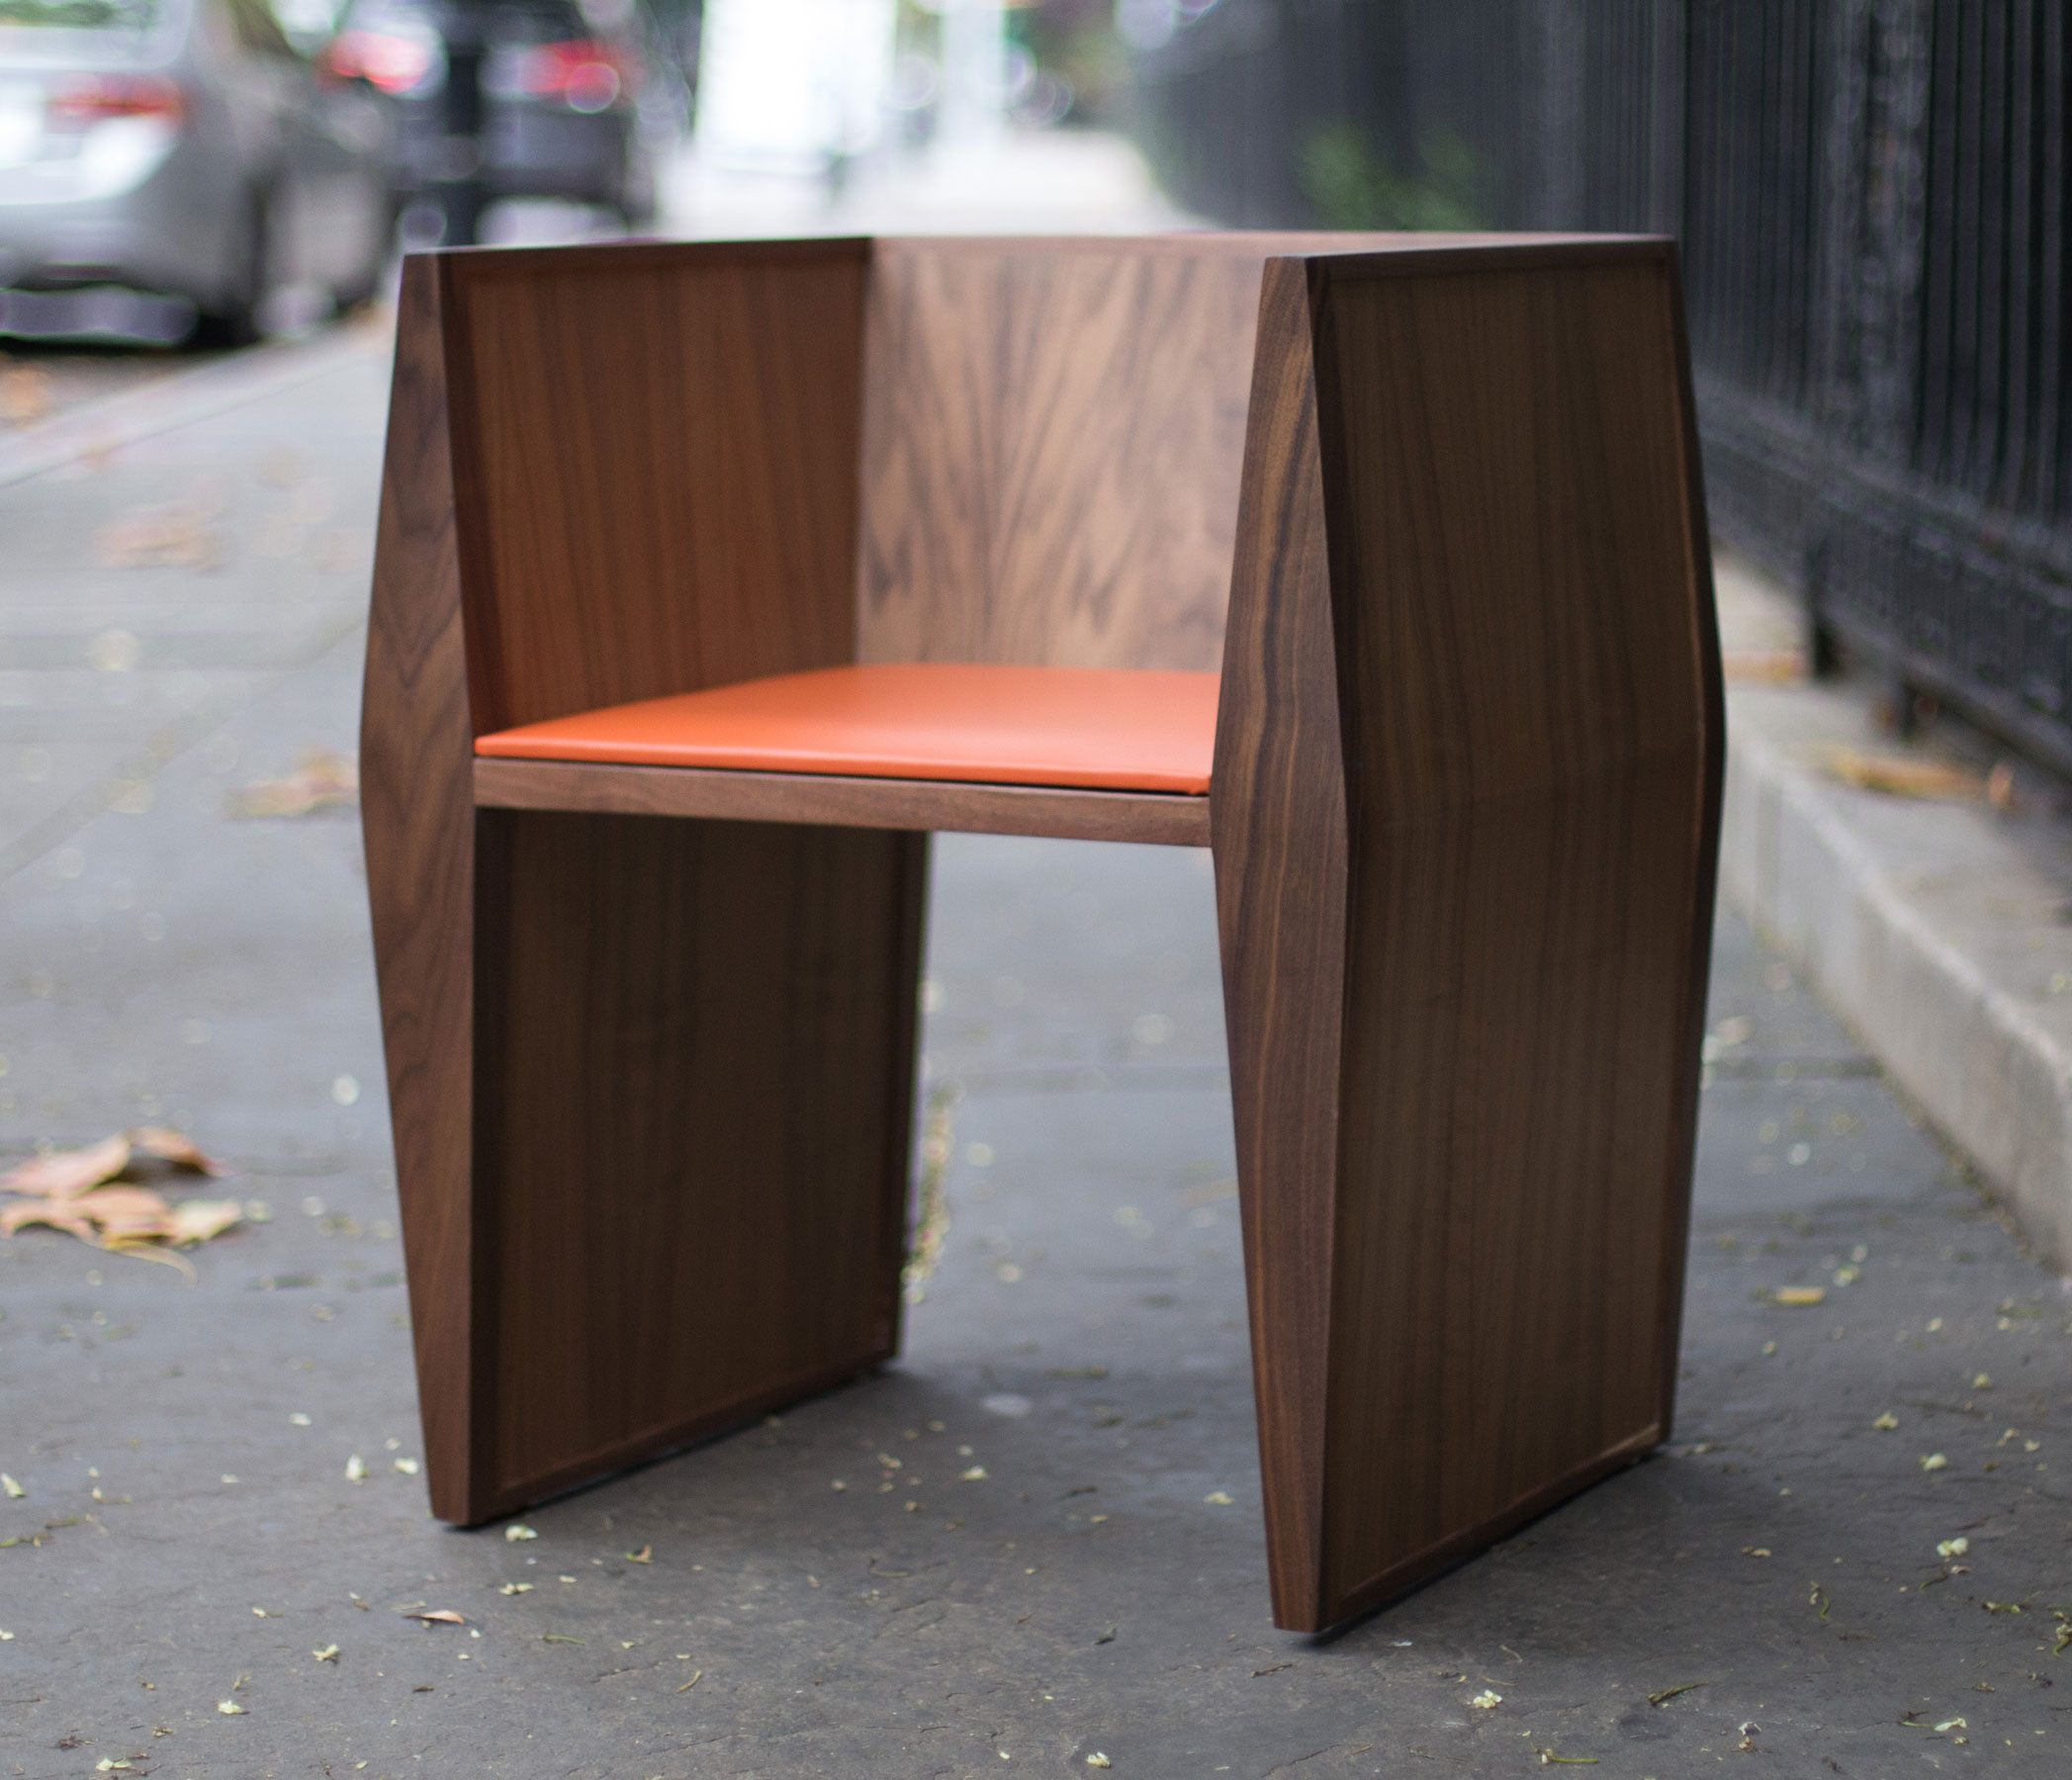 Sapience Chair in Walnut w/Vinyl Seat